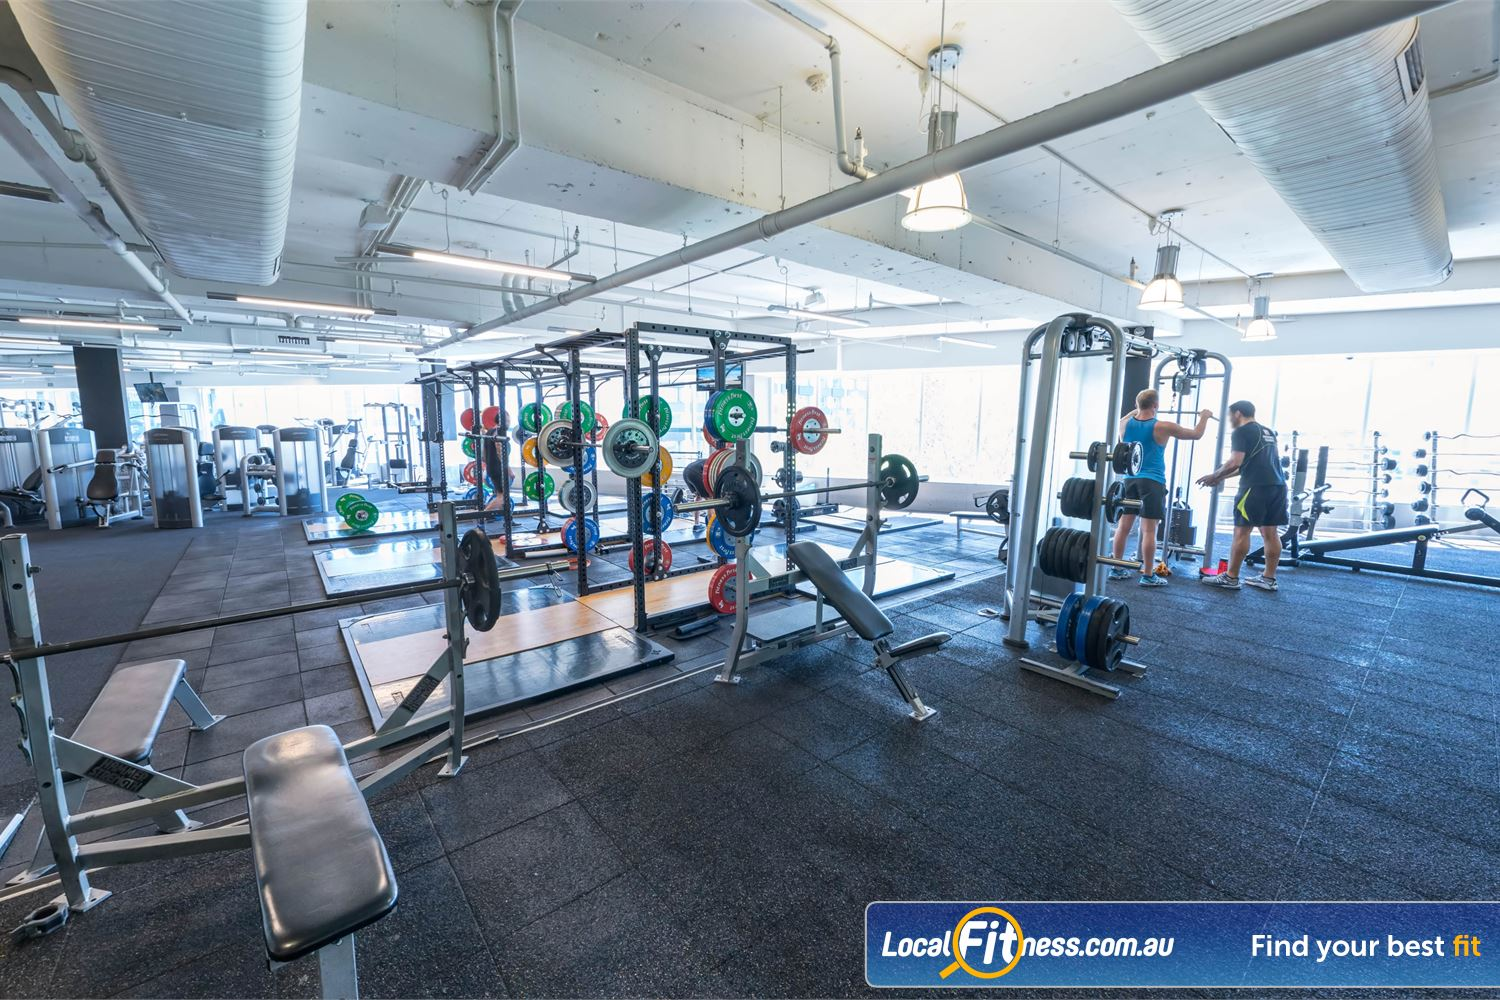 Fitness First Platinum Kings Cross Potts Point 7 lifting platforms, multipurpose lifting cages perfect for deadlifts, squats and more.